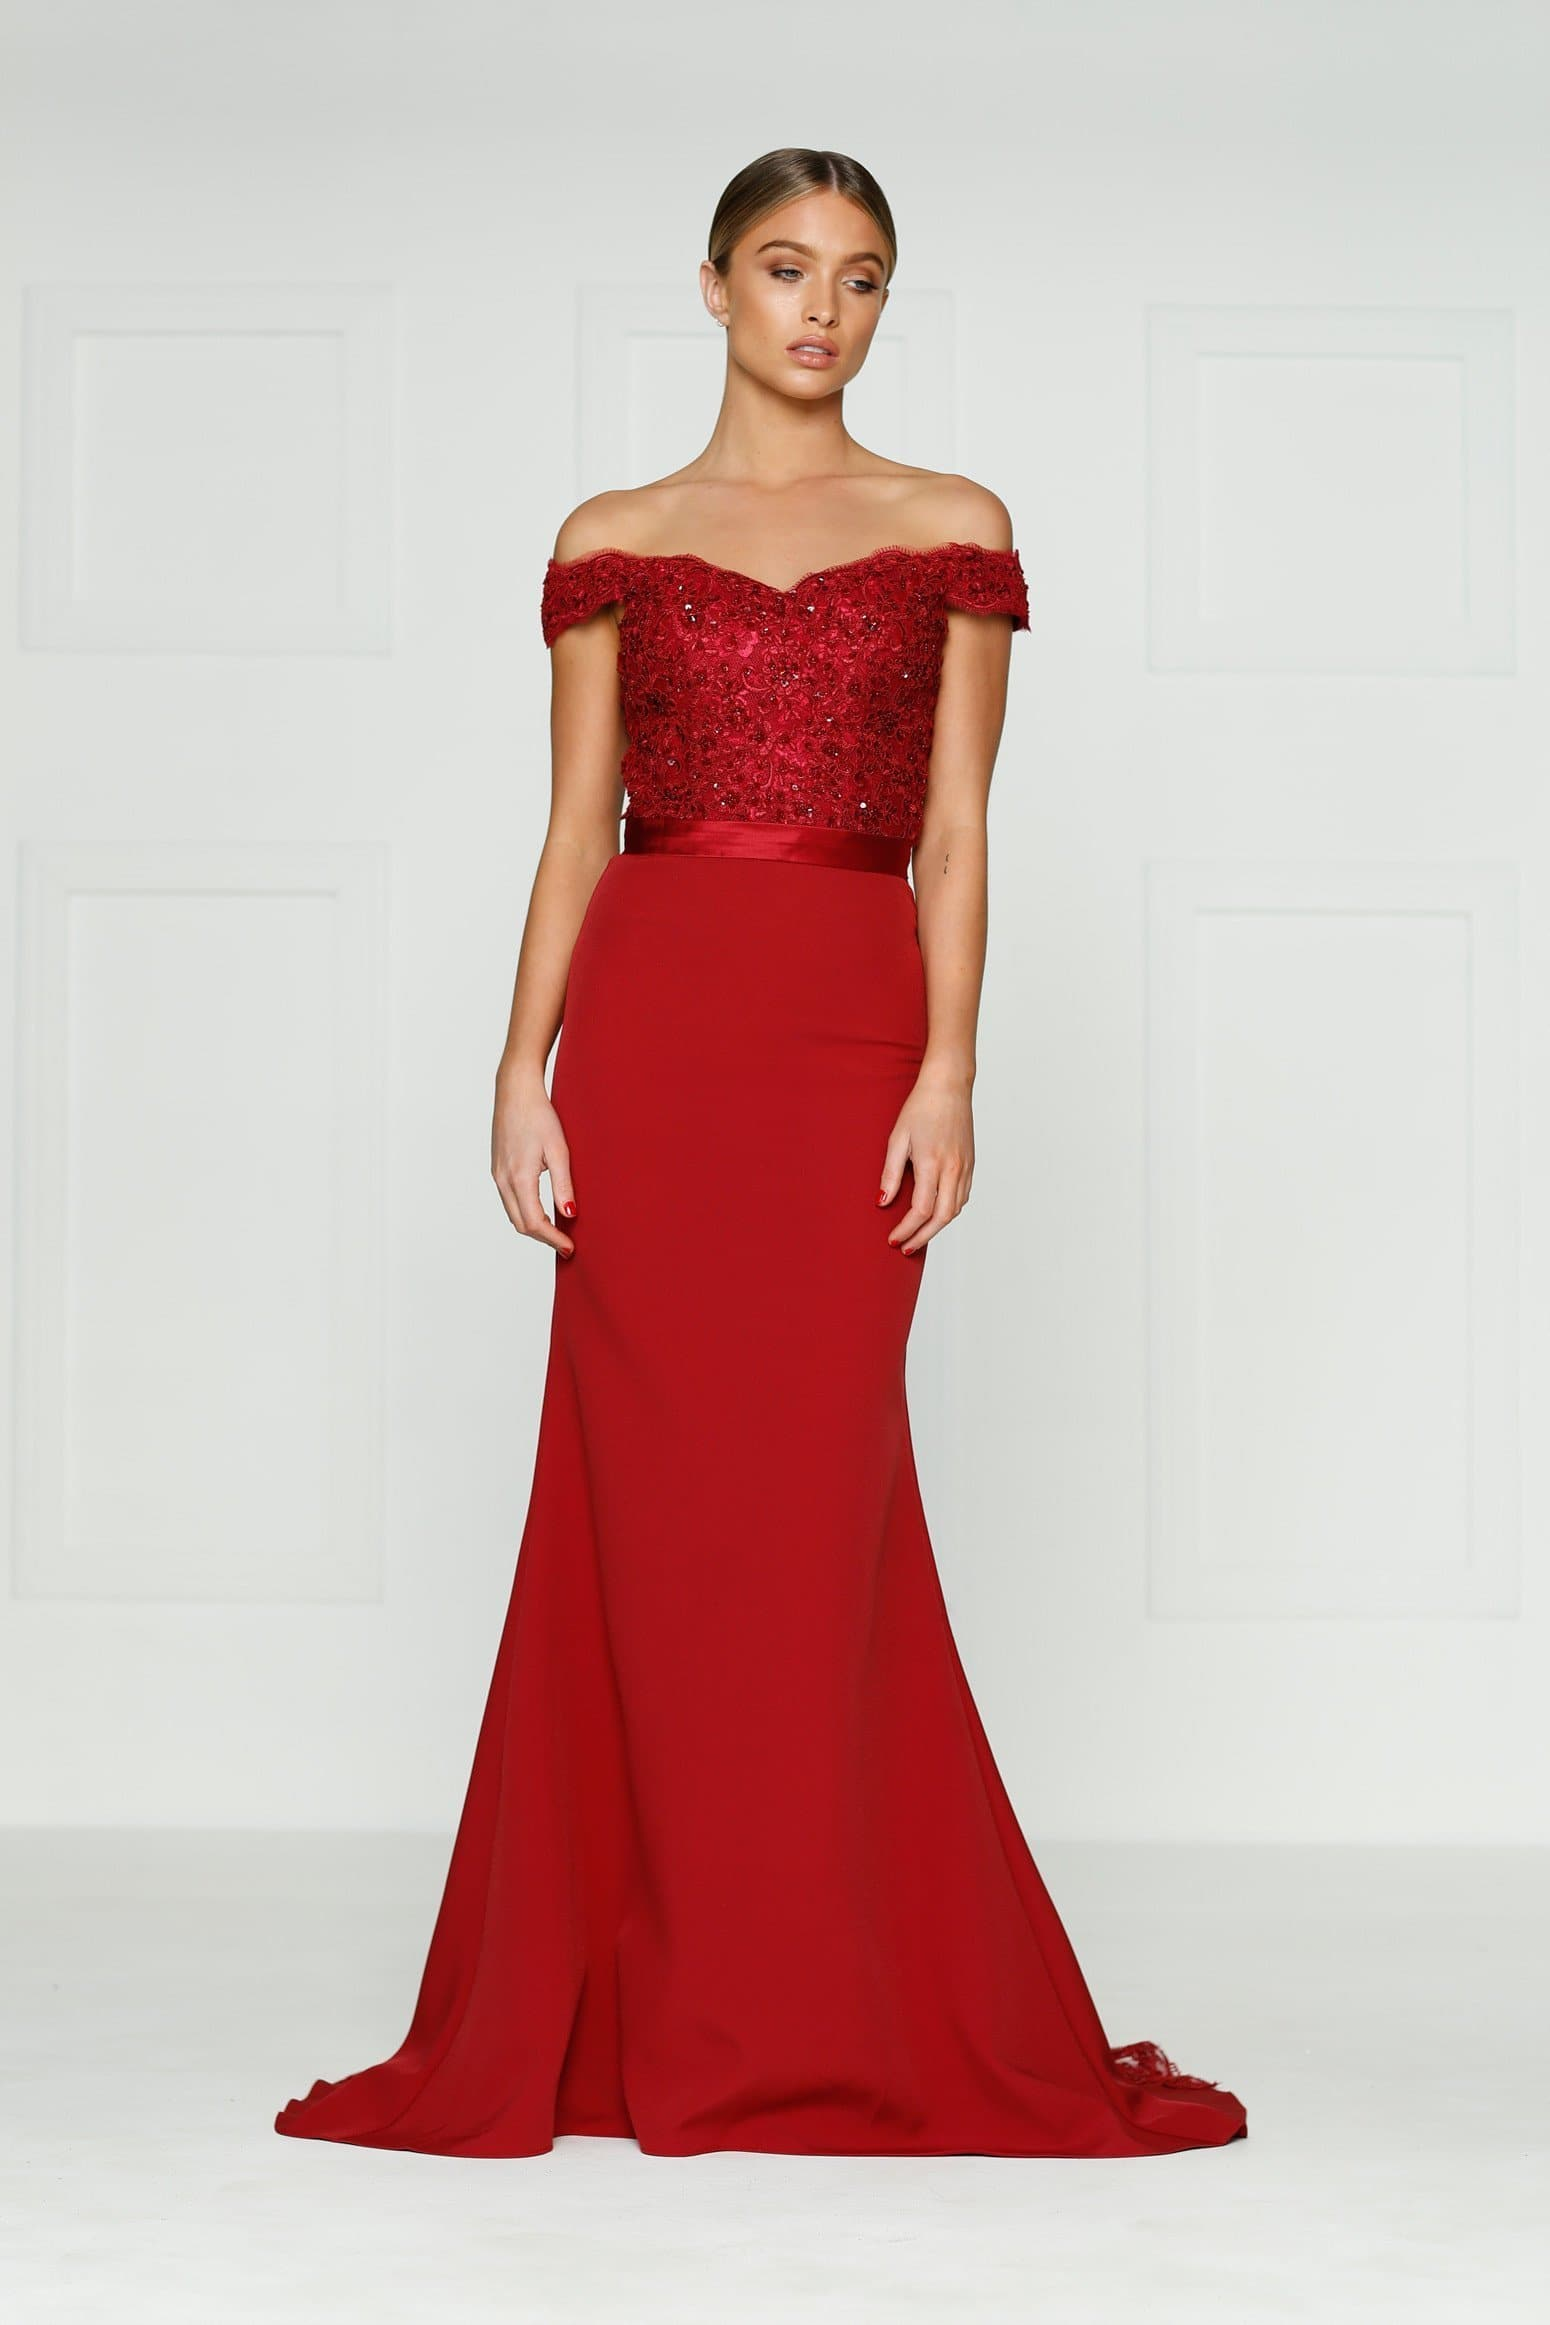 A&N Sandy - Wine Red Lace Gown with Off-Shoulder Straps